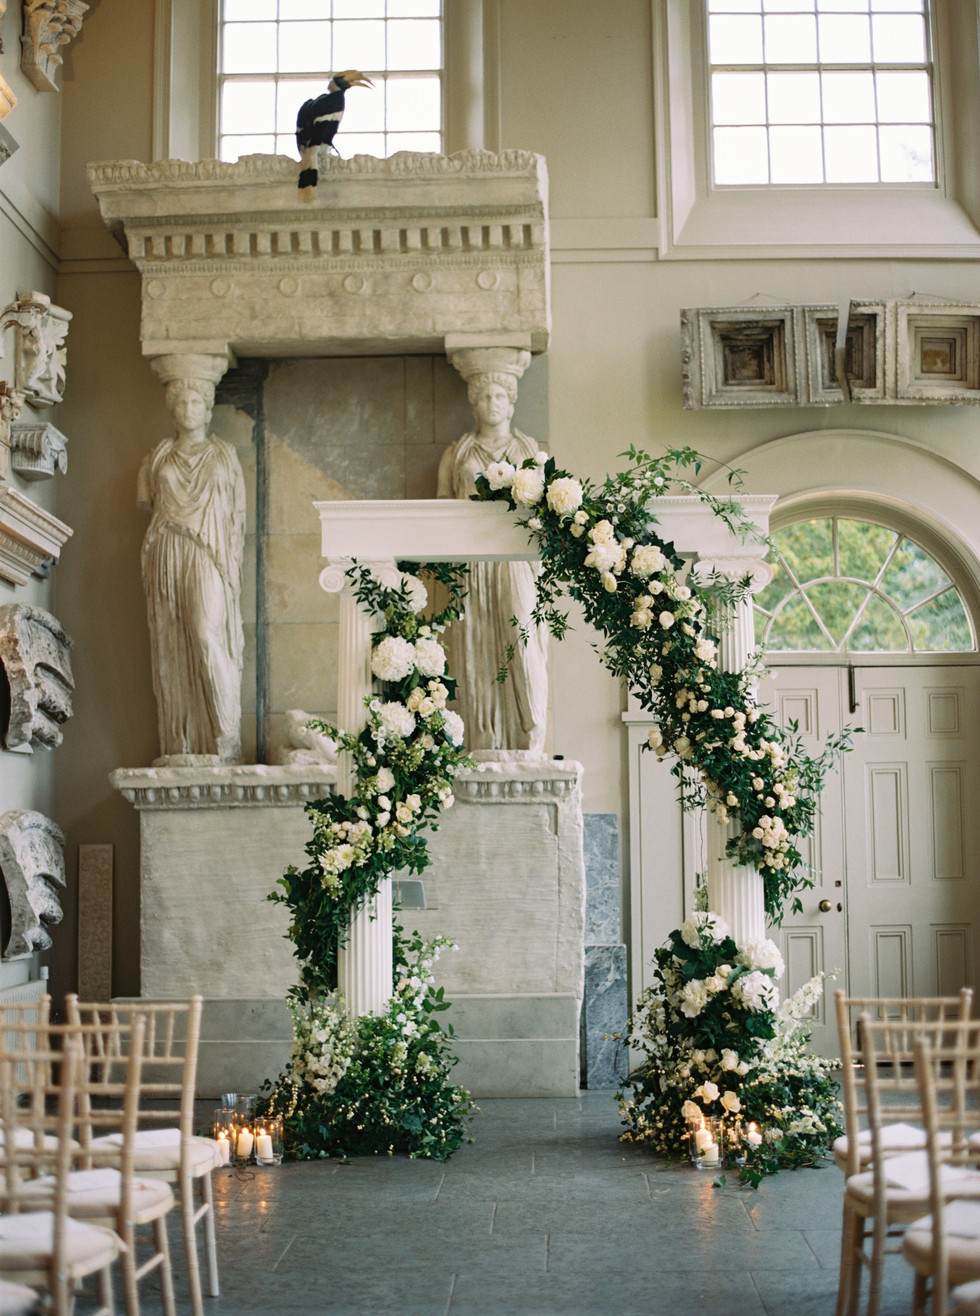 AN AMERICAN WEDDING IN THE COTSWOLDS: A FOUR DAY ENGLISH AUTUMNAL CELEBRATION